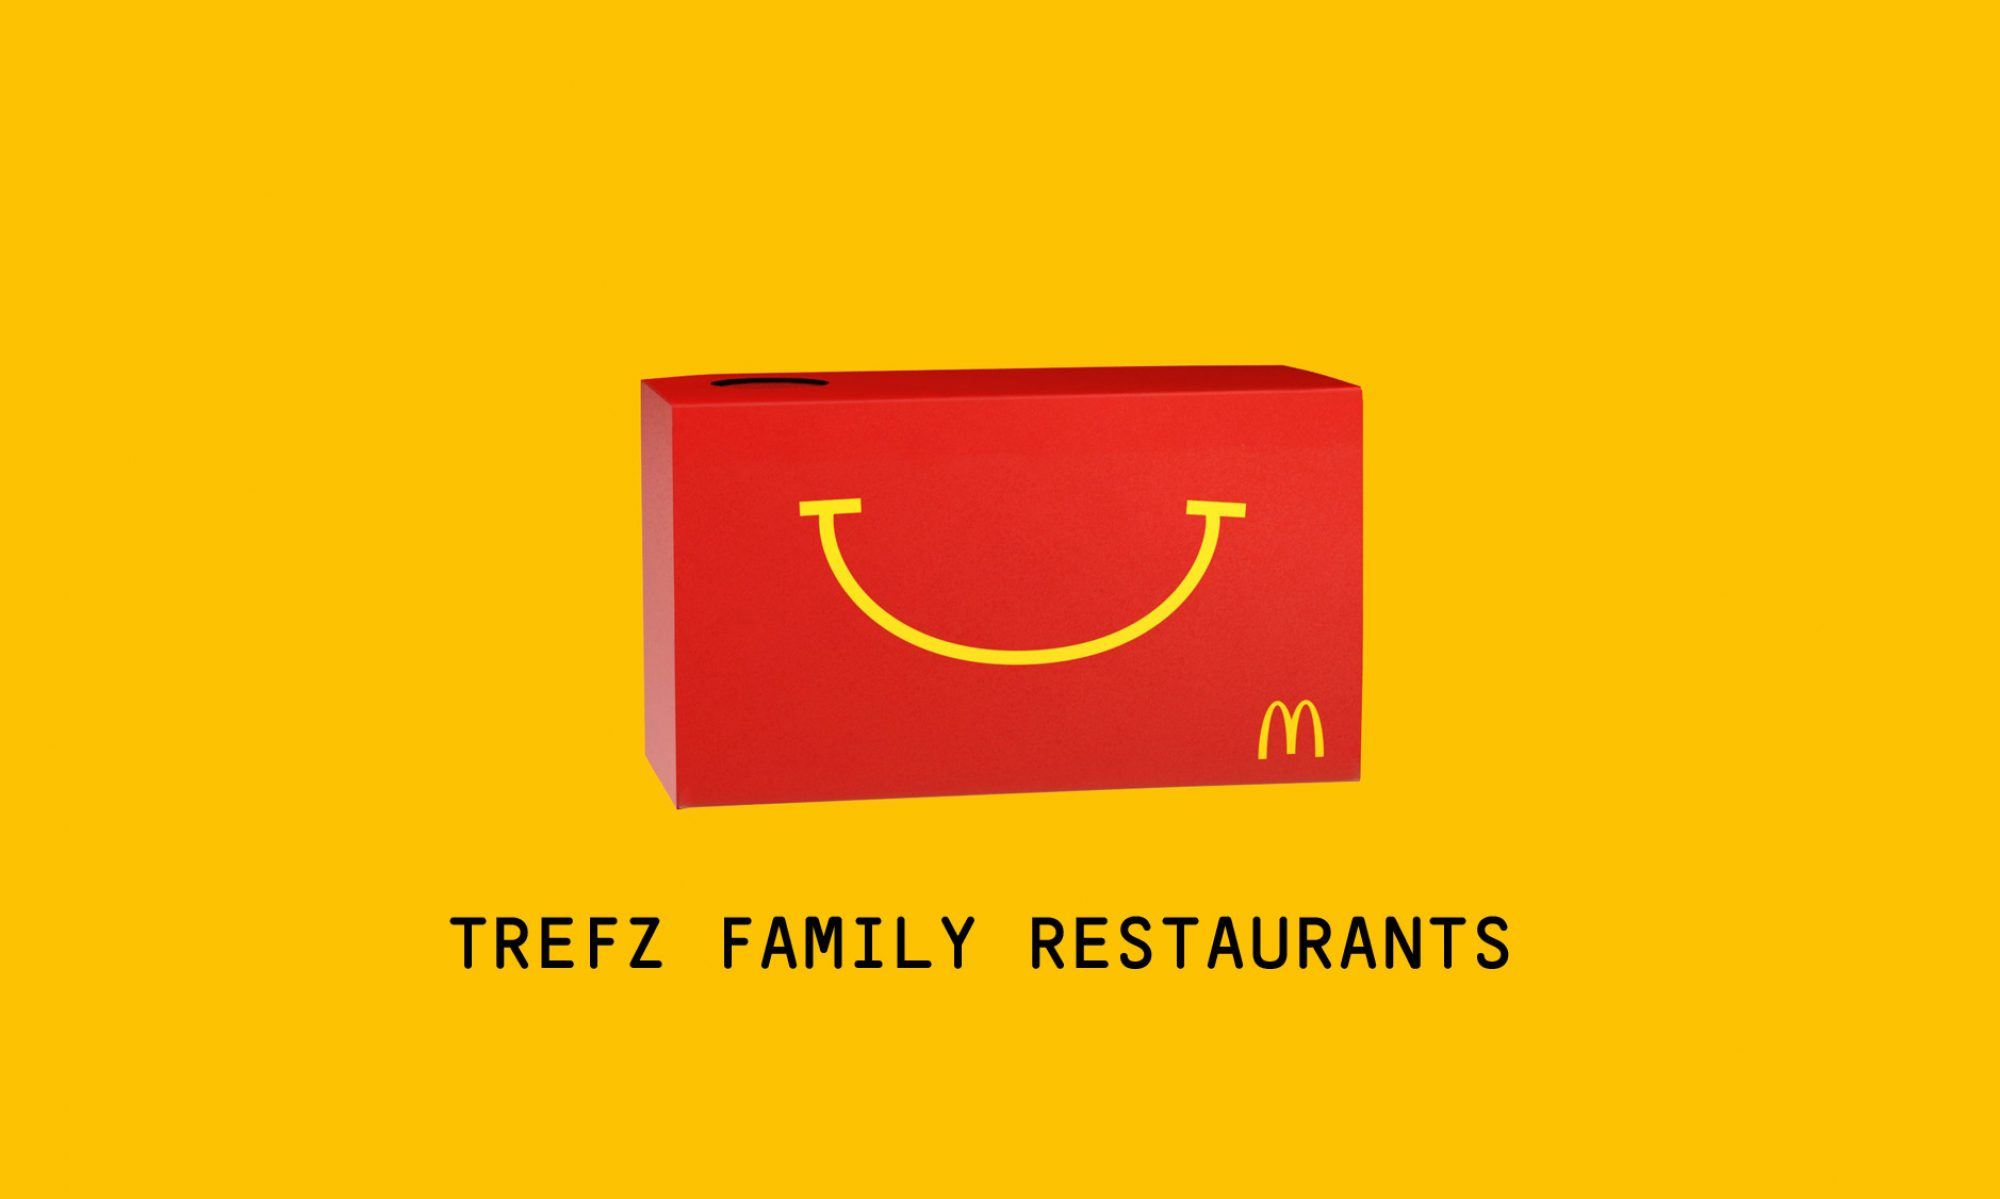 TREFZ Family McDonalds